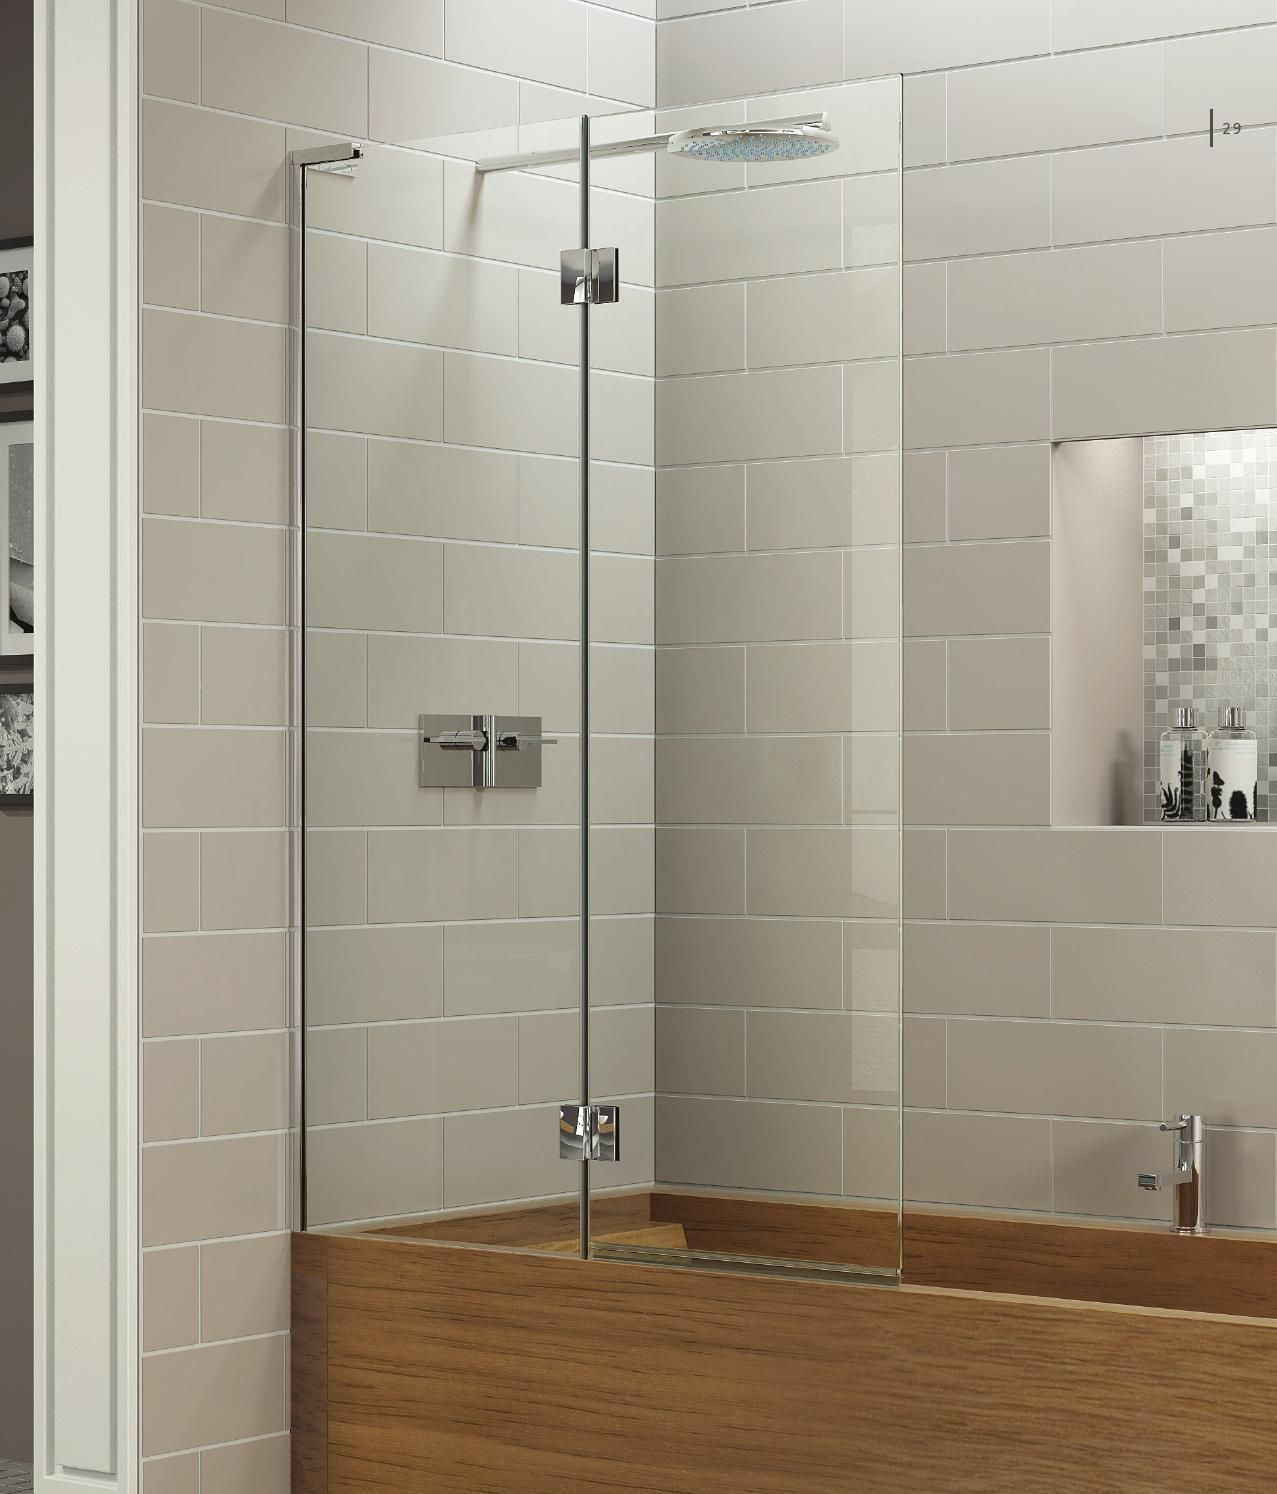 Frosted And Textured Glass Options For Shower Doors Bathroom Shower Doors Shower Door Designs Glass Shower Doors